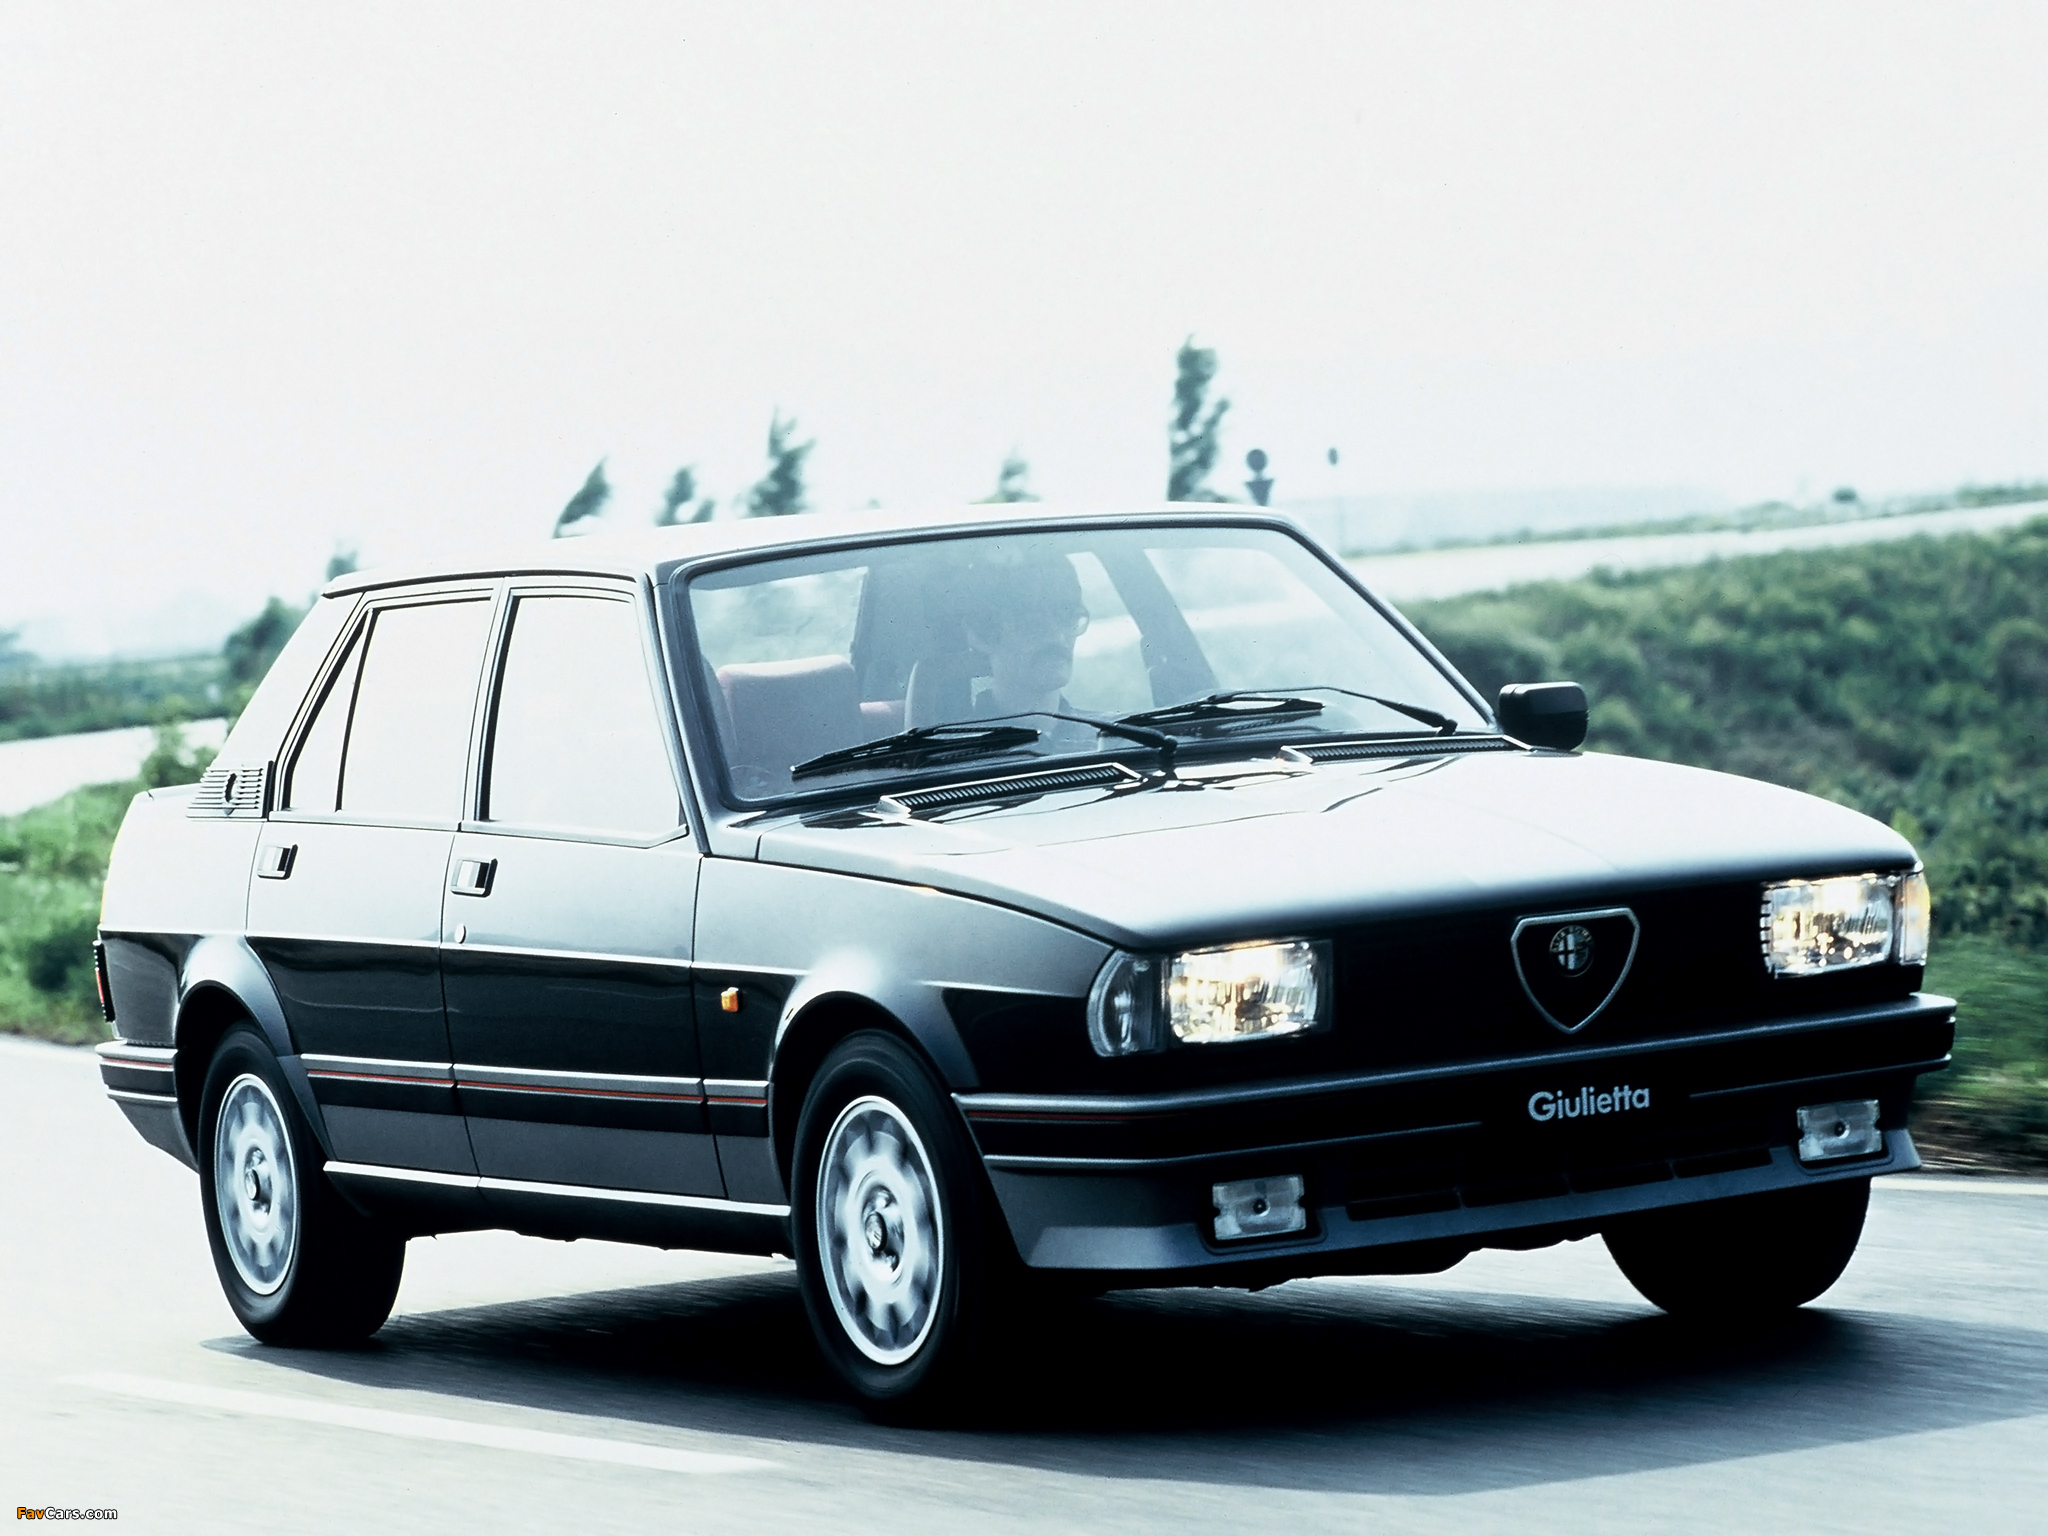 Alfa Romeo Giulietta 2.0 1985 photo - 4